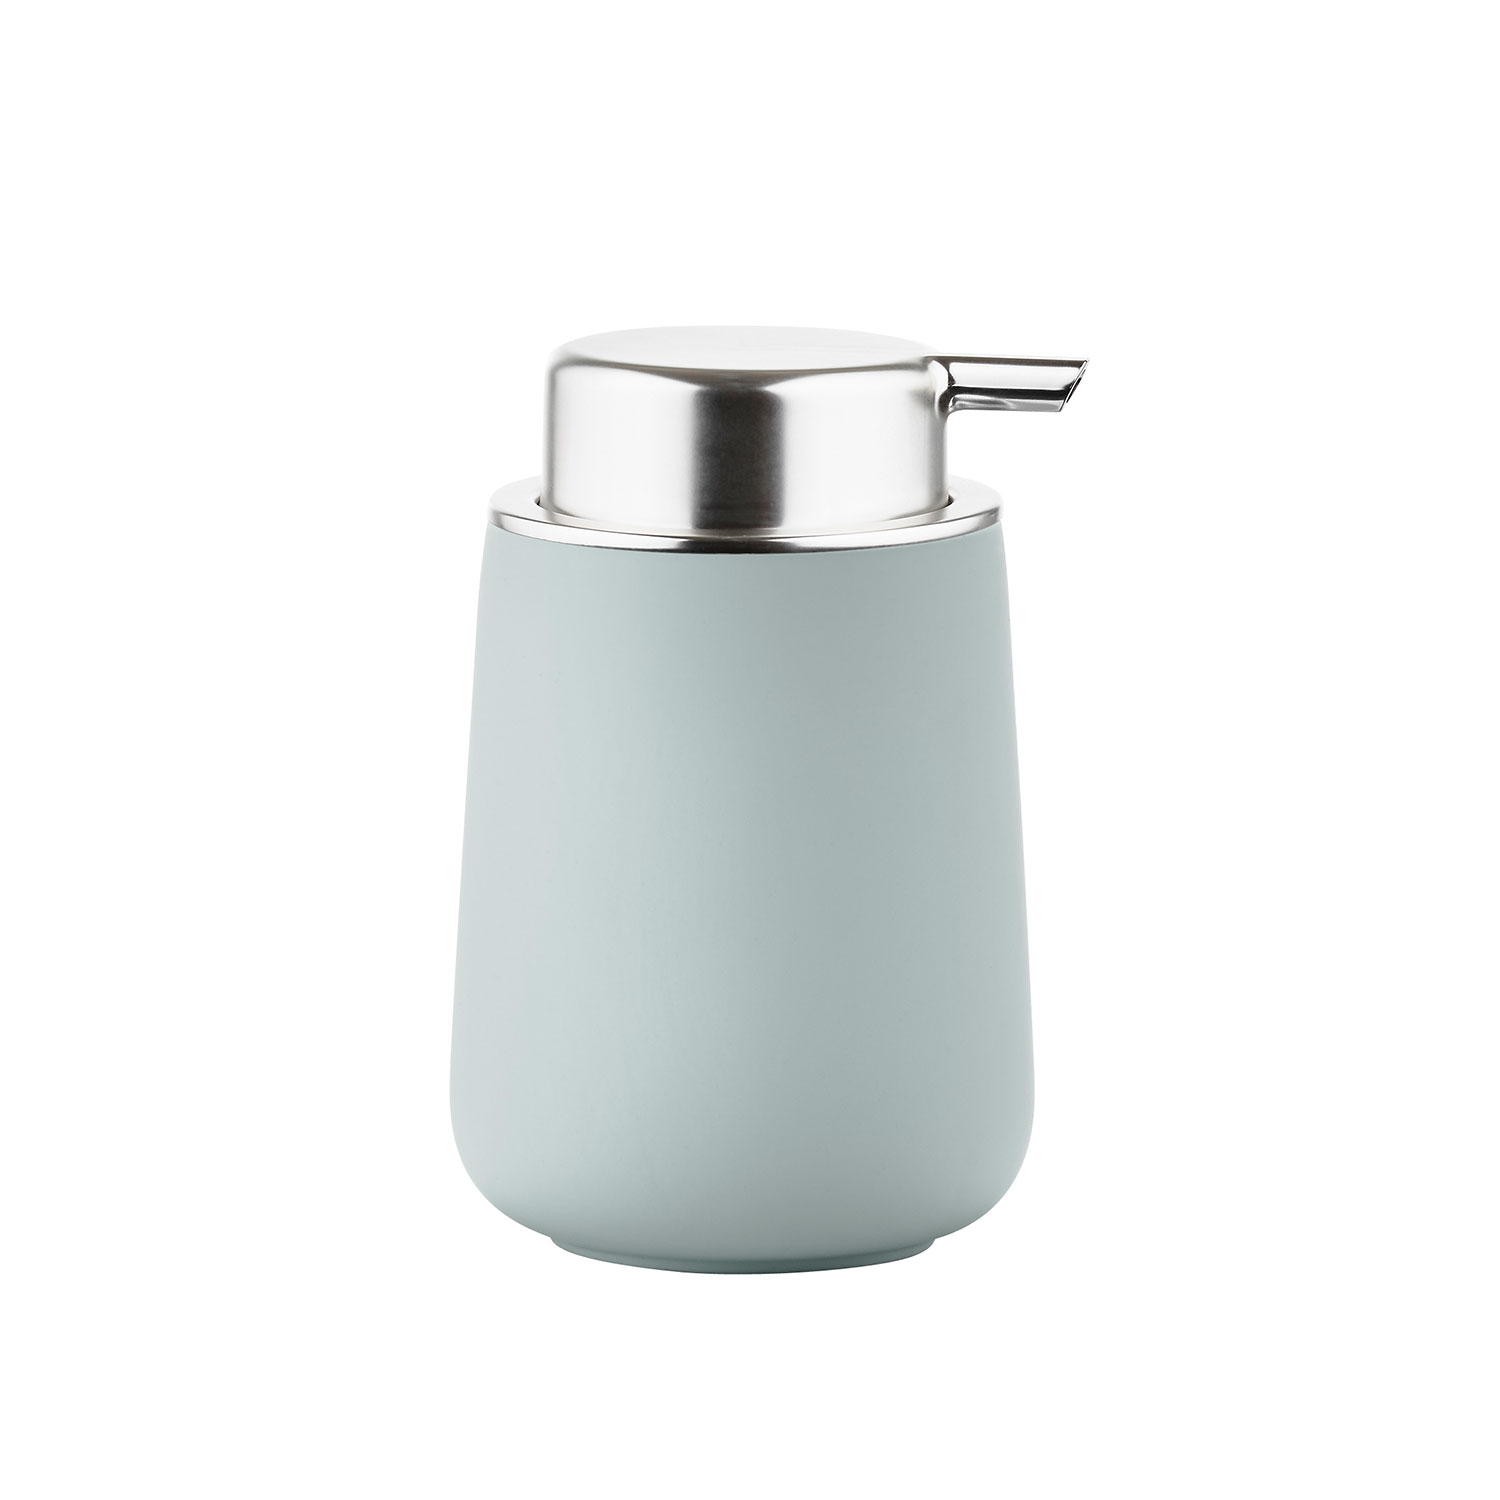 Nova Soap Dispenser, Dusty Green